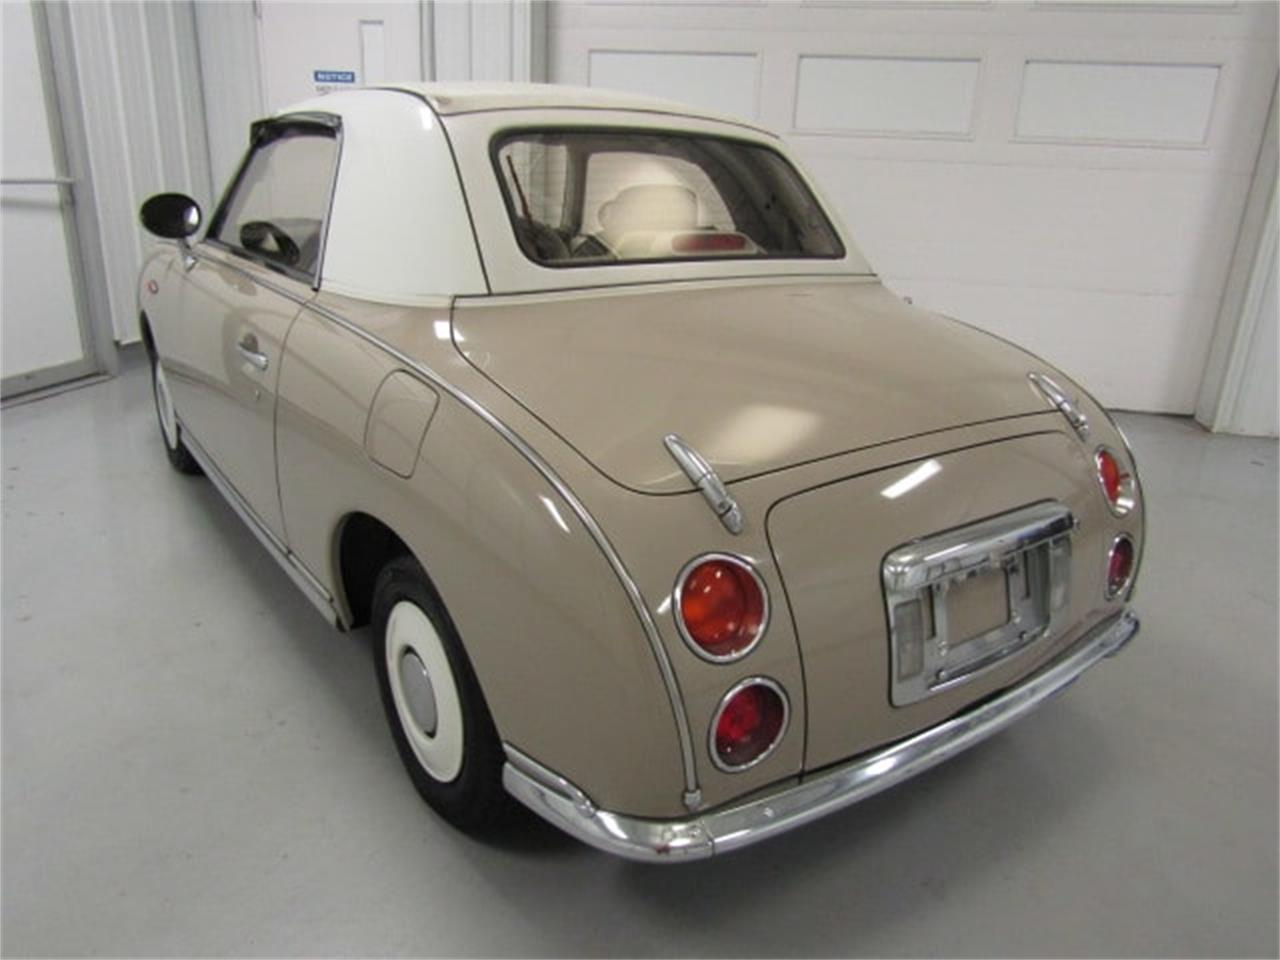 Large Picture of 1991 Nissan Figaro - $10,900.00 Offered by Duncan Imports & Classic Cars - JL79